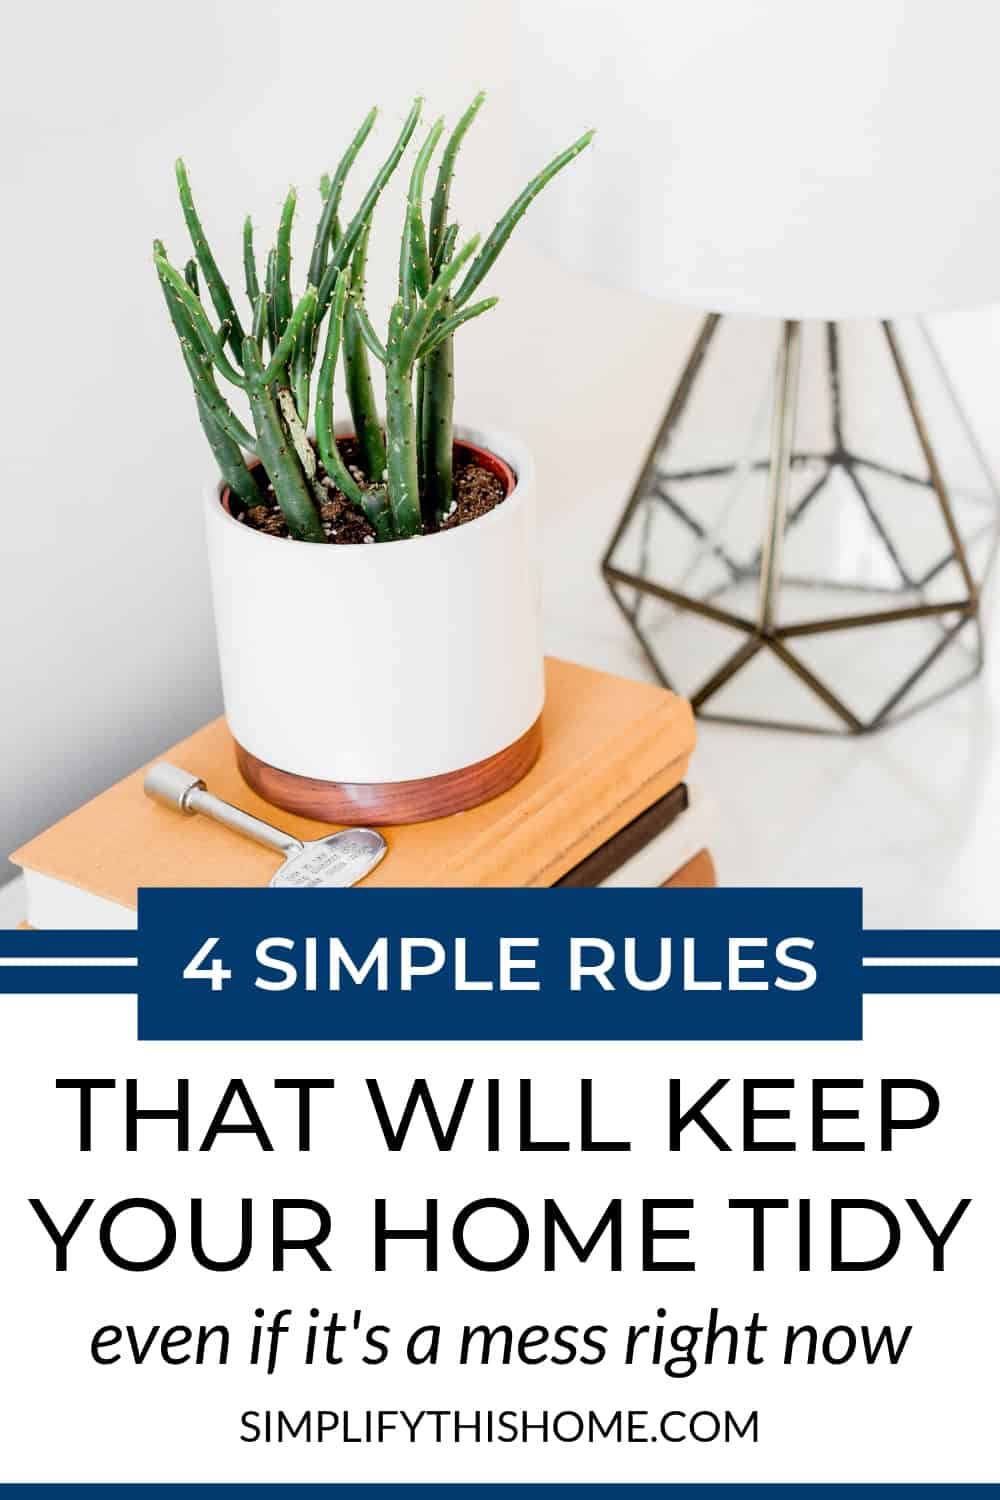 Four rules that will keep your home tidy